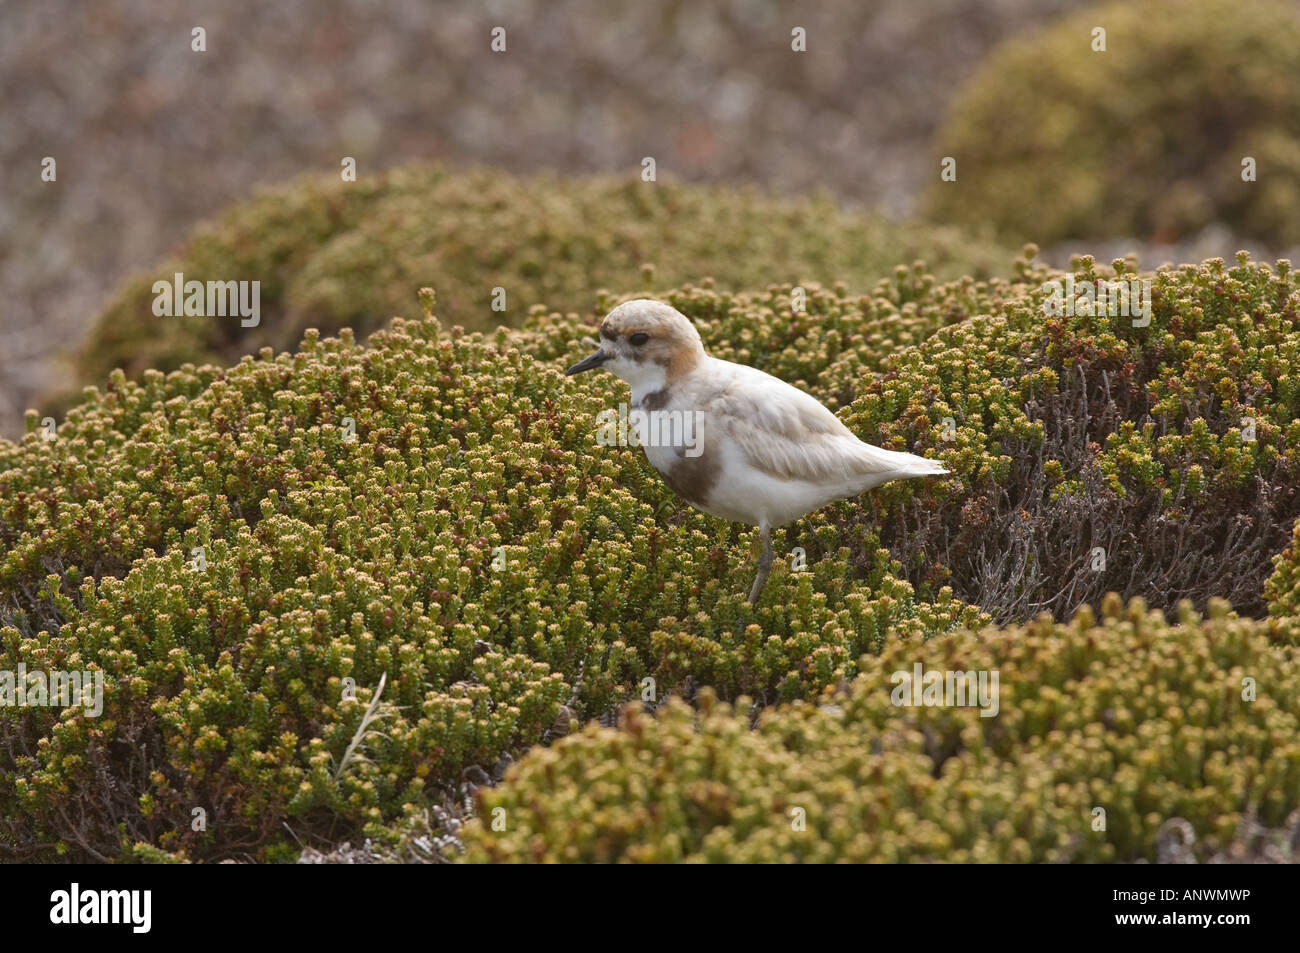 Two banded Plover (Charadrius falklandicus) adult with reduced pigmentation (leucism) in diddle dee (Empetrum rubrum) - Stock Image